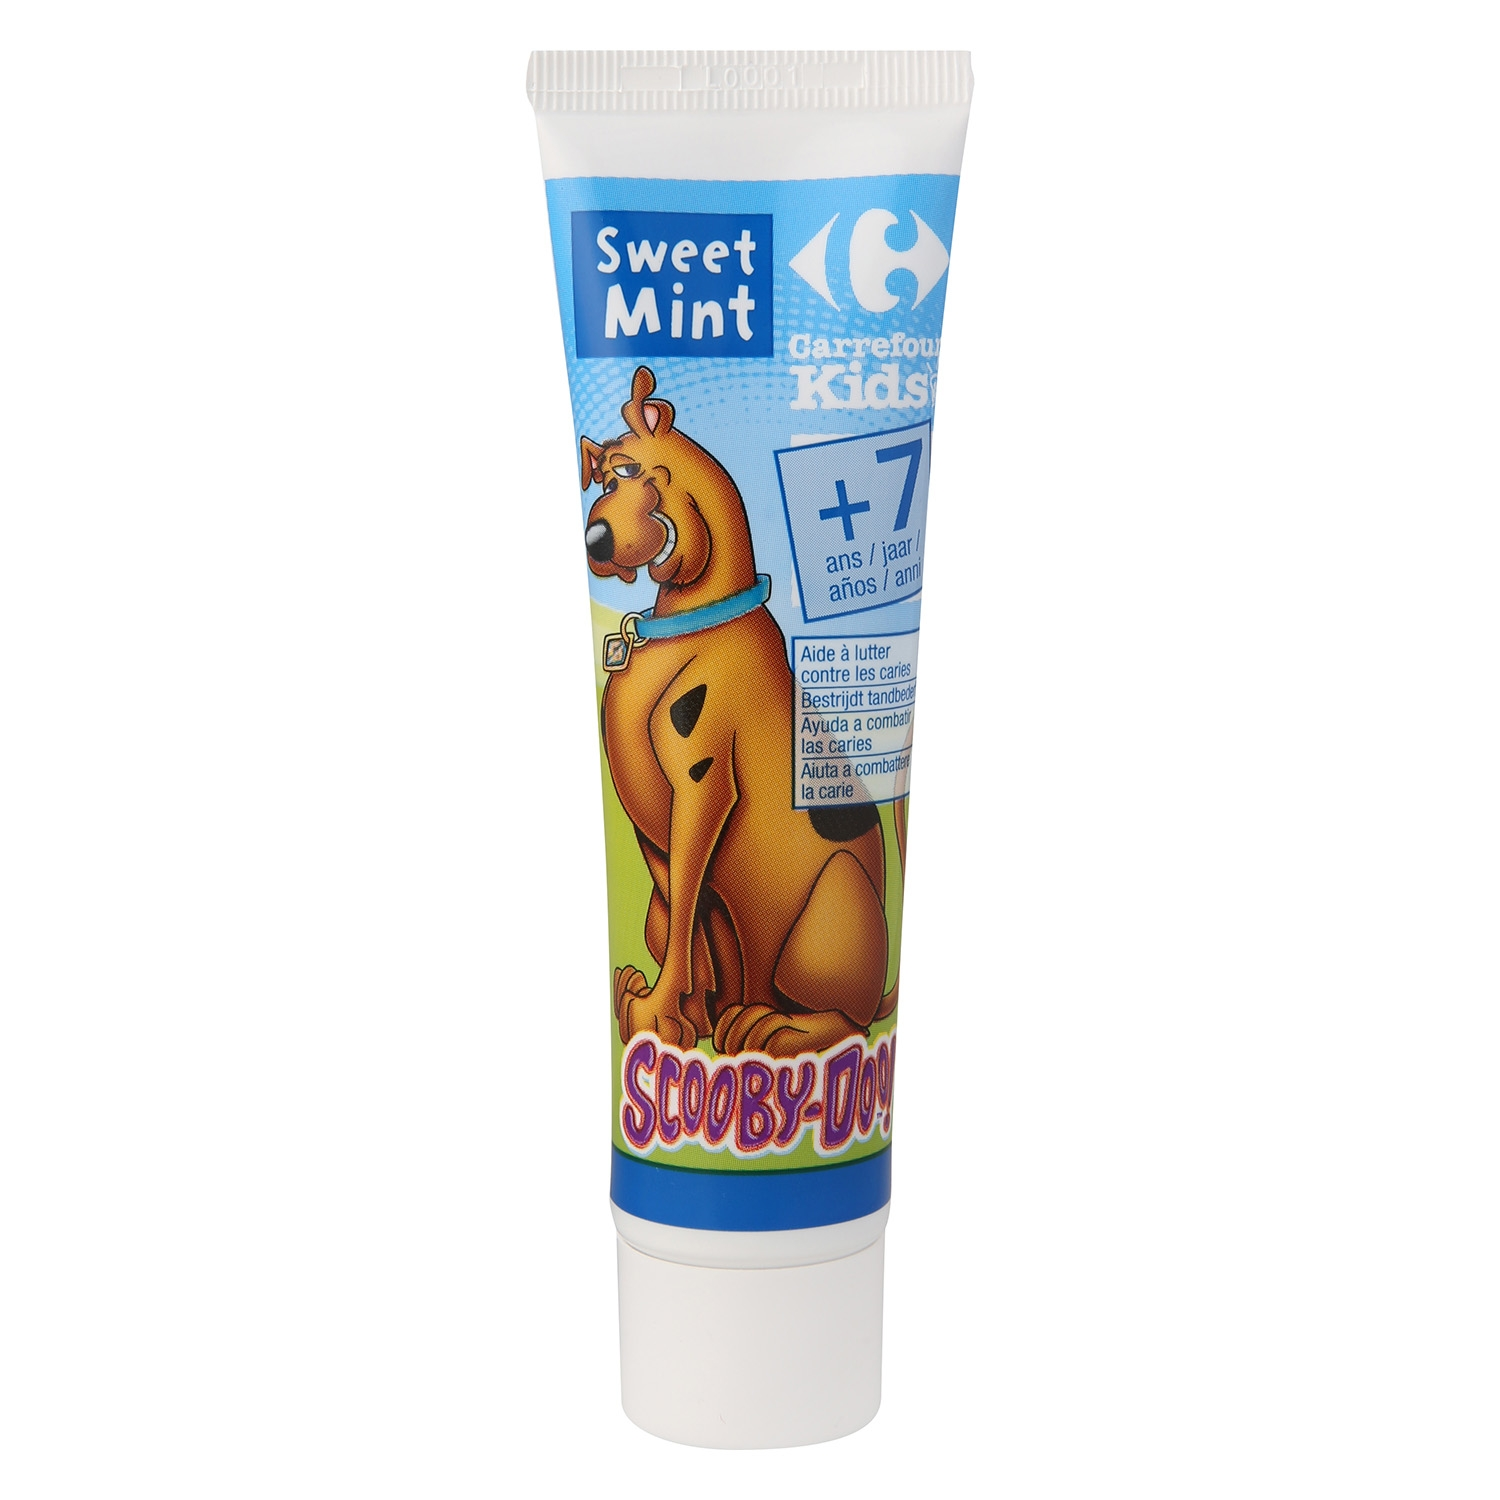 Dentífrico sweet mint + 6 Carrefour Kids 50 ml.